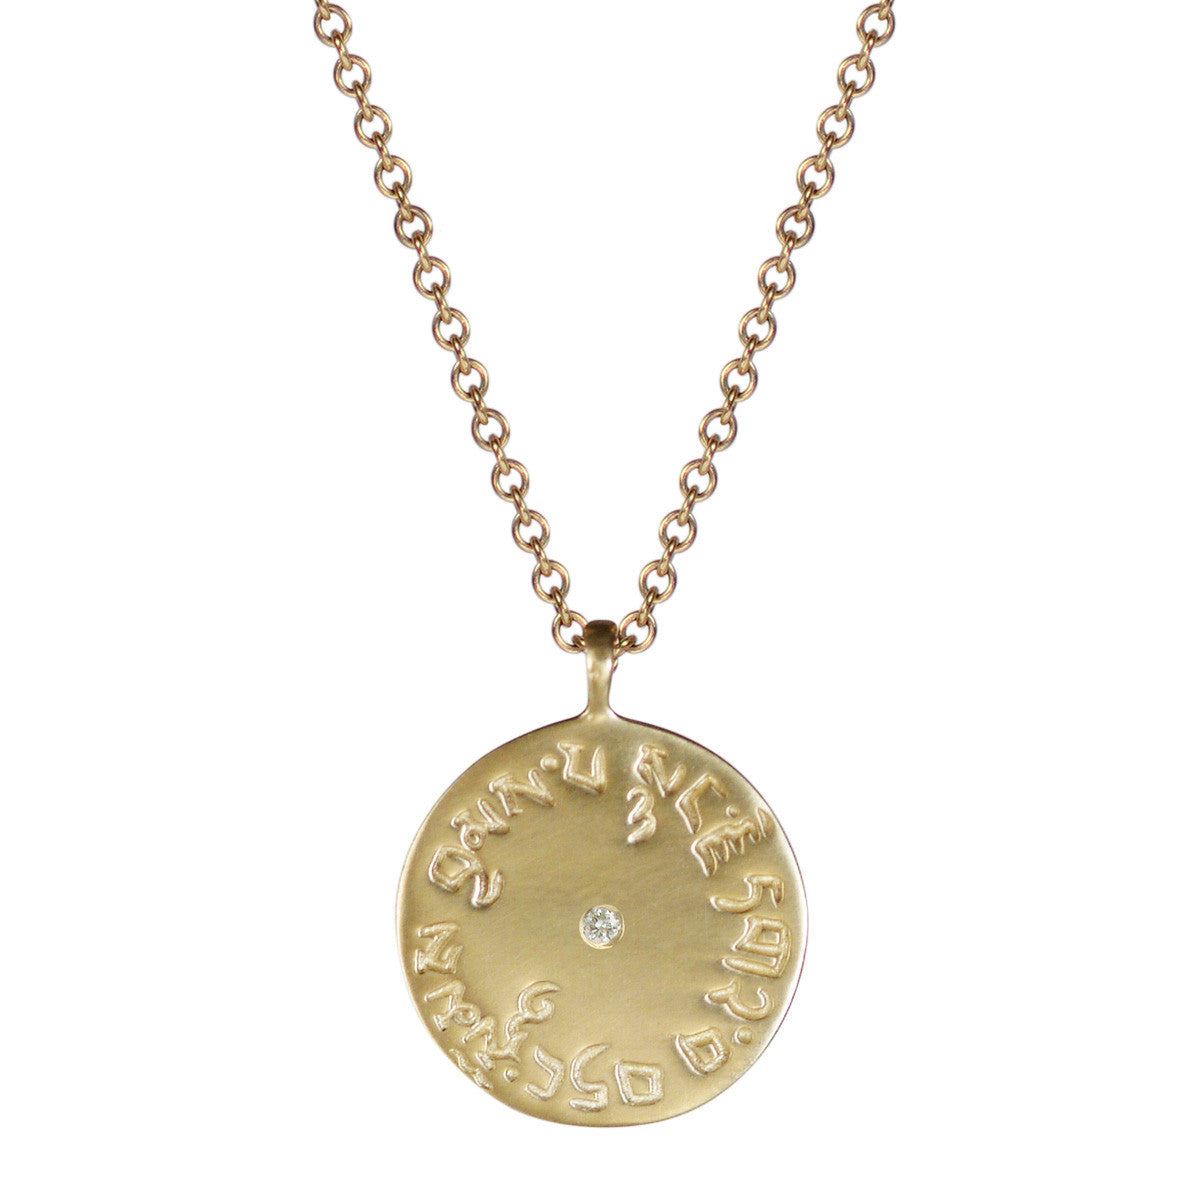 10K Gold Four Immeasurables Medallion Pendant with Diamond